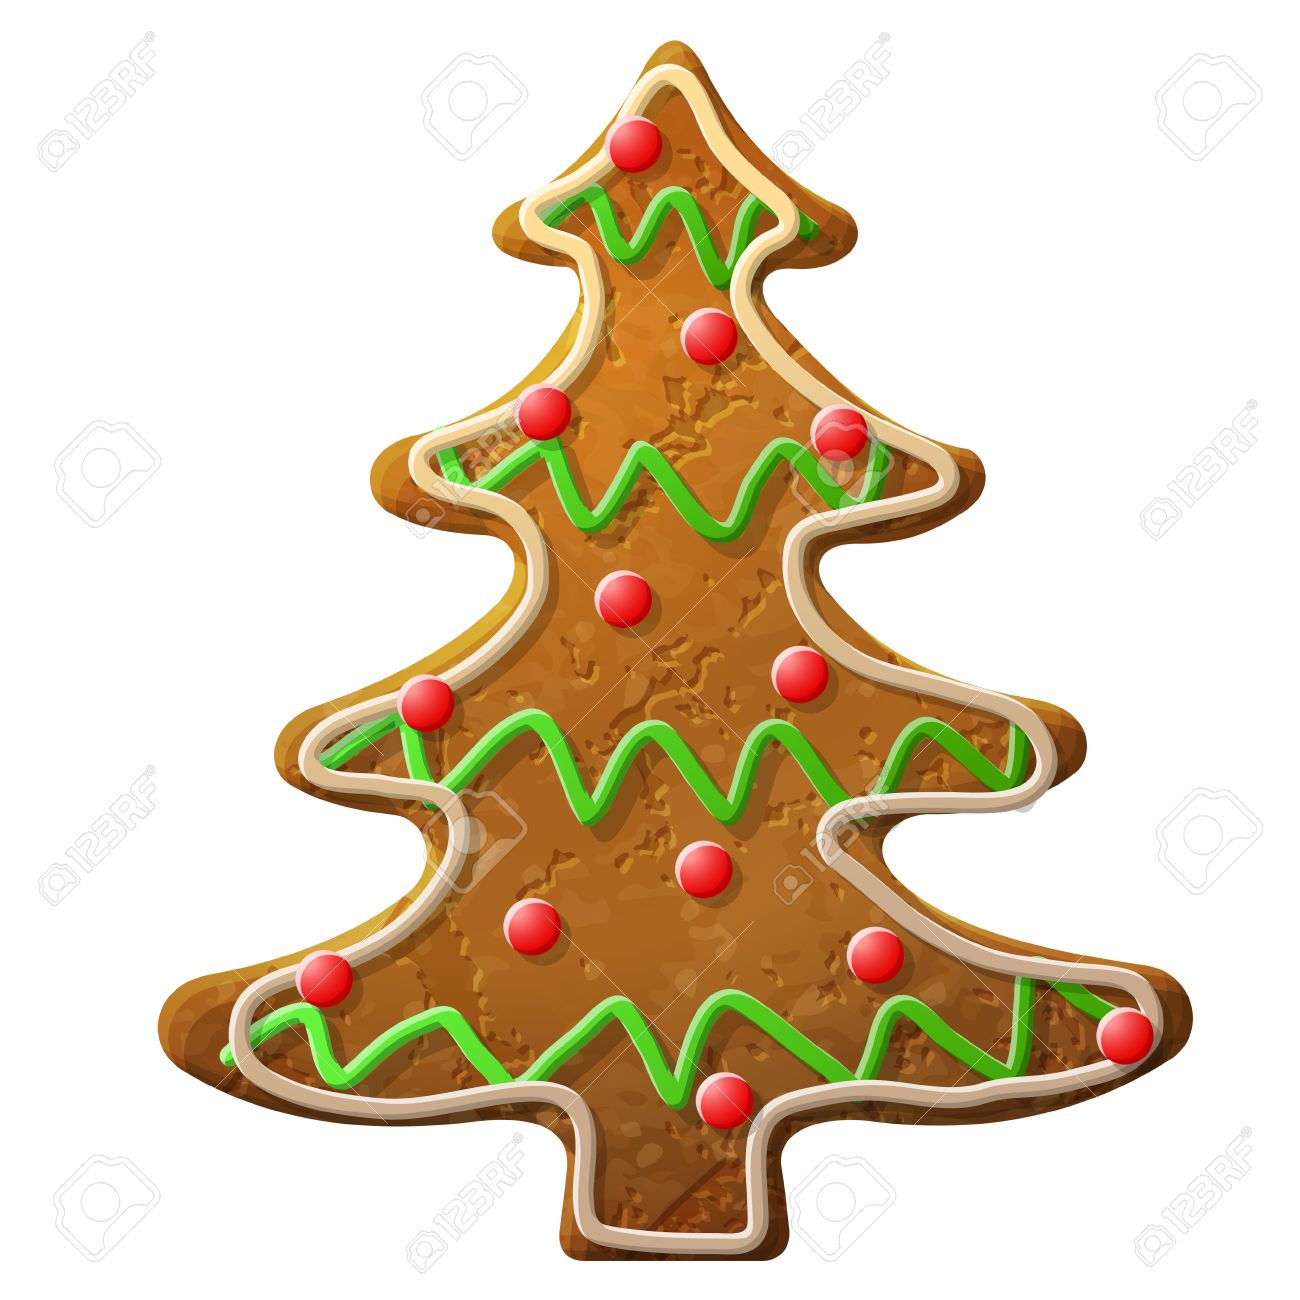 Gingerbread Christmas Tree Decorated Colored Icing Holiday Cookie Royalty Free Cliparts Vectors And Stock Illustration Image 22787769